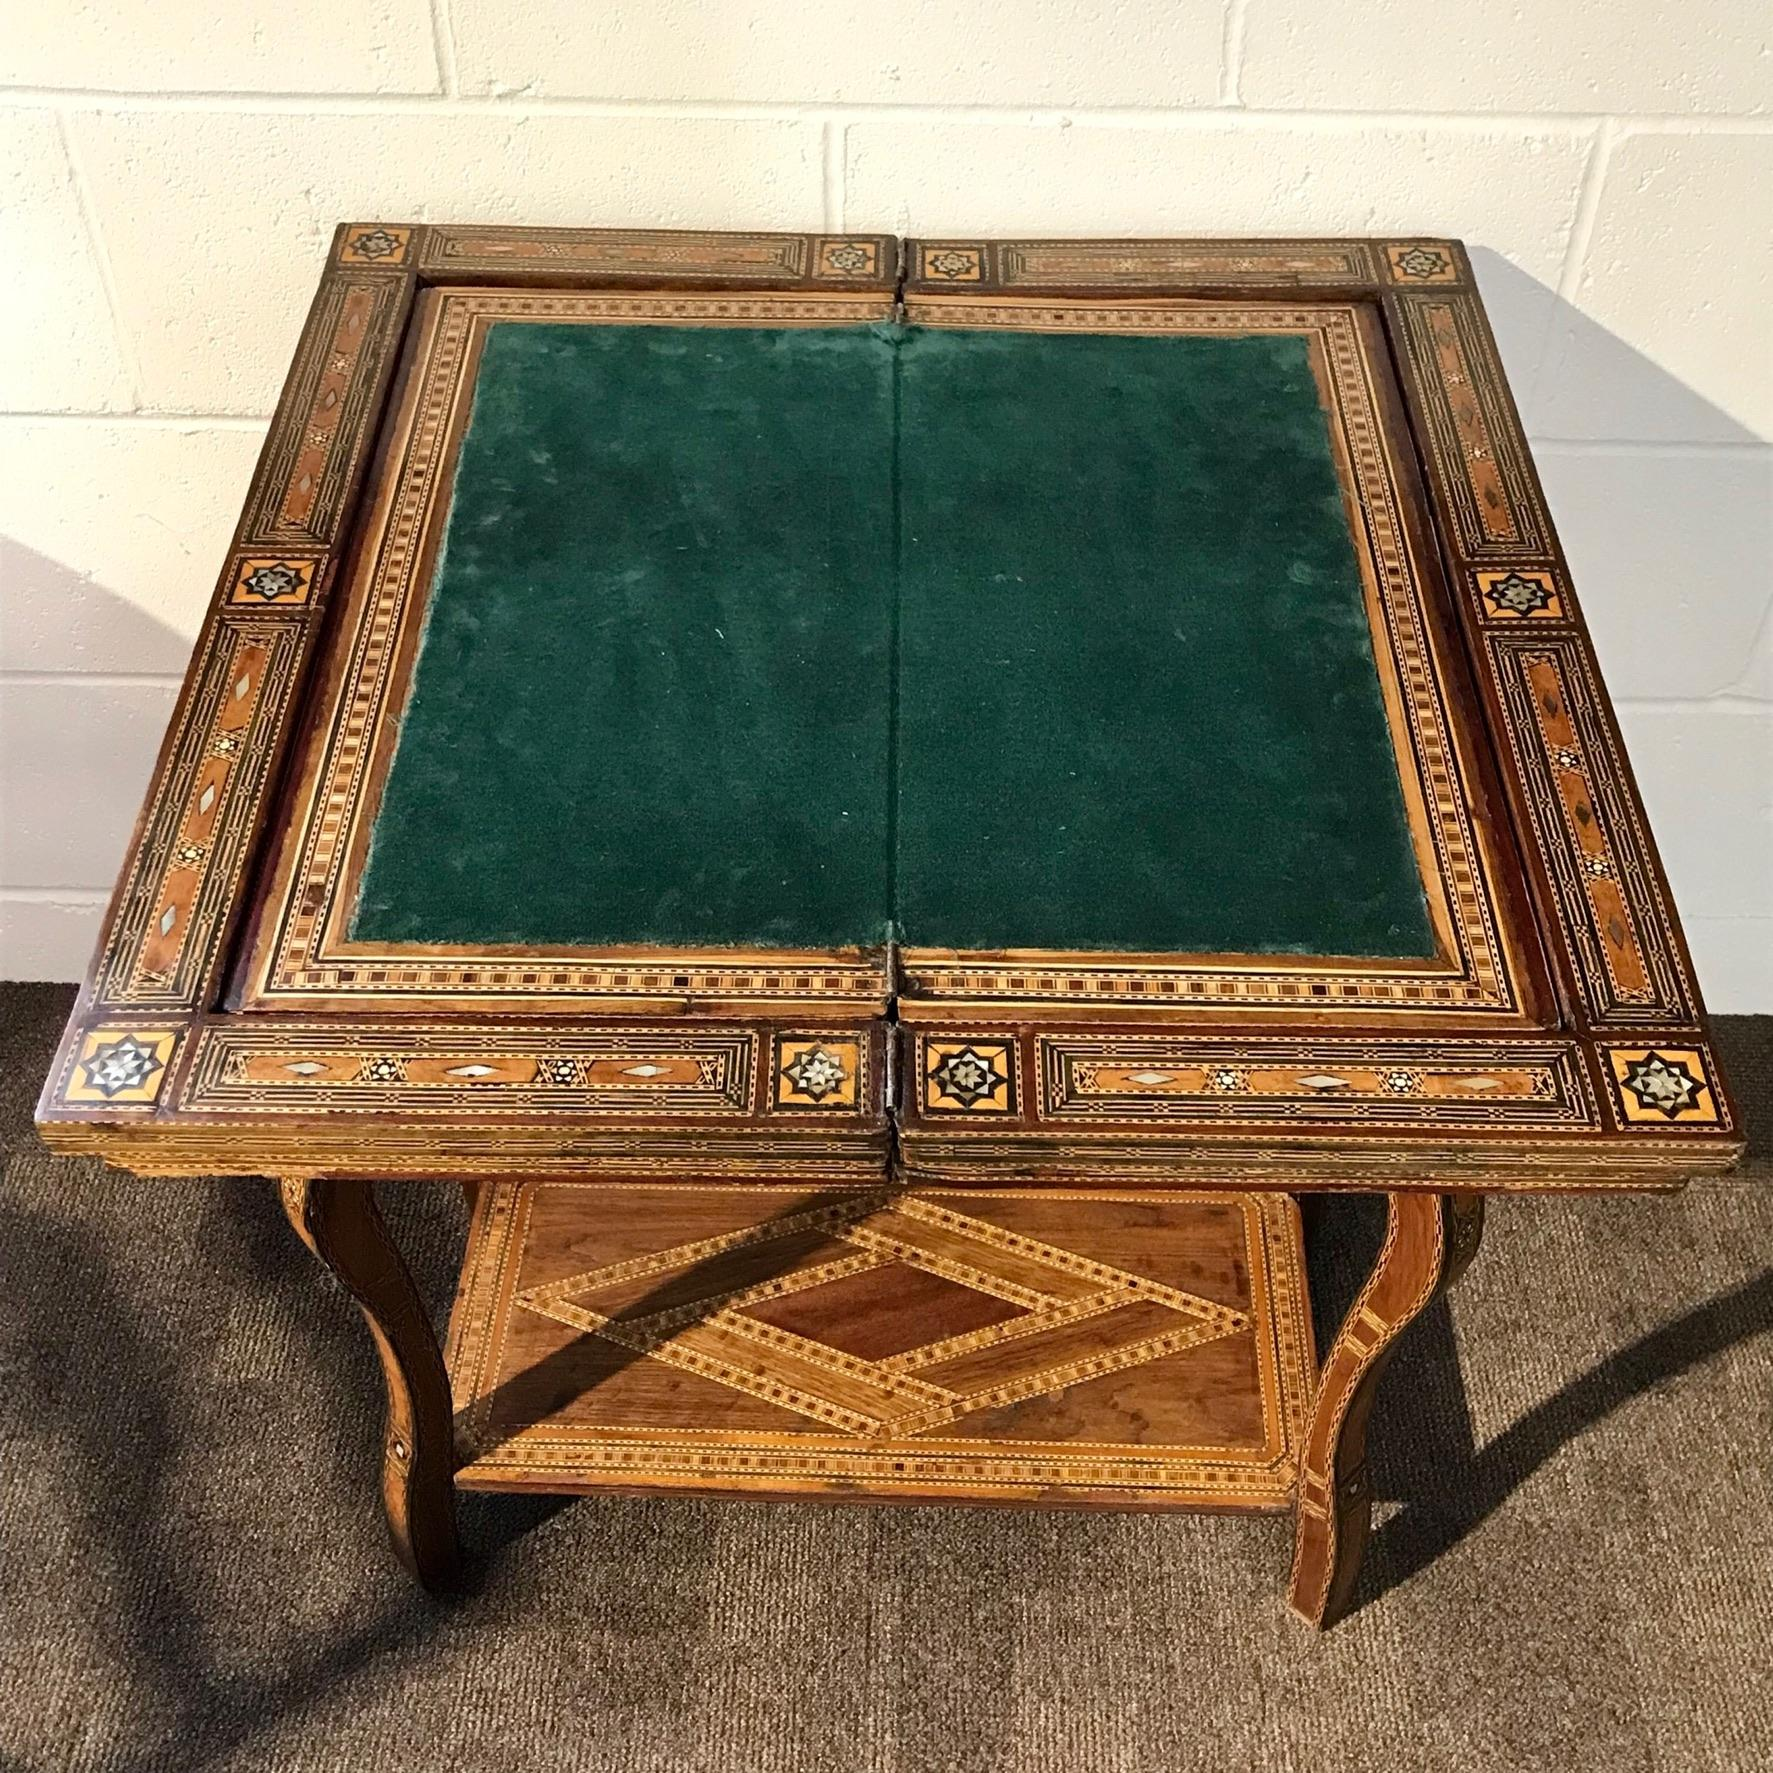 A Syrian Mother Of Pearl Bench Available To Purchase At: Antique Syrian Inlaid Games Table Circa 1900